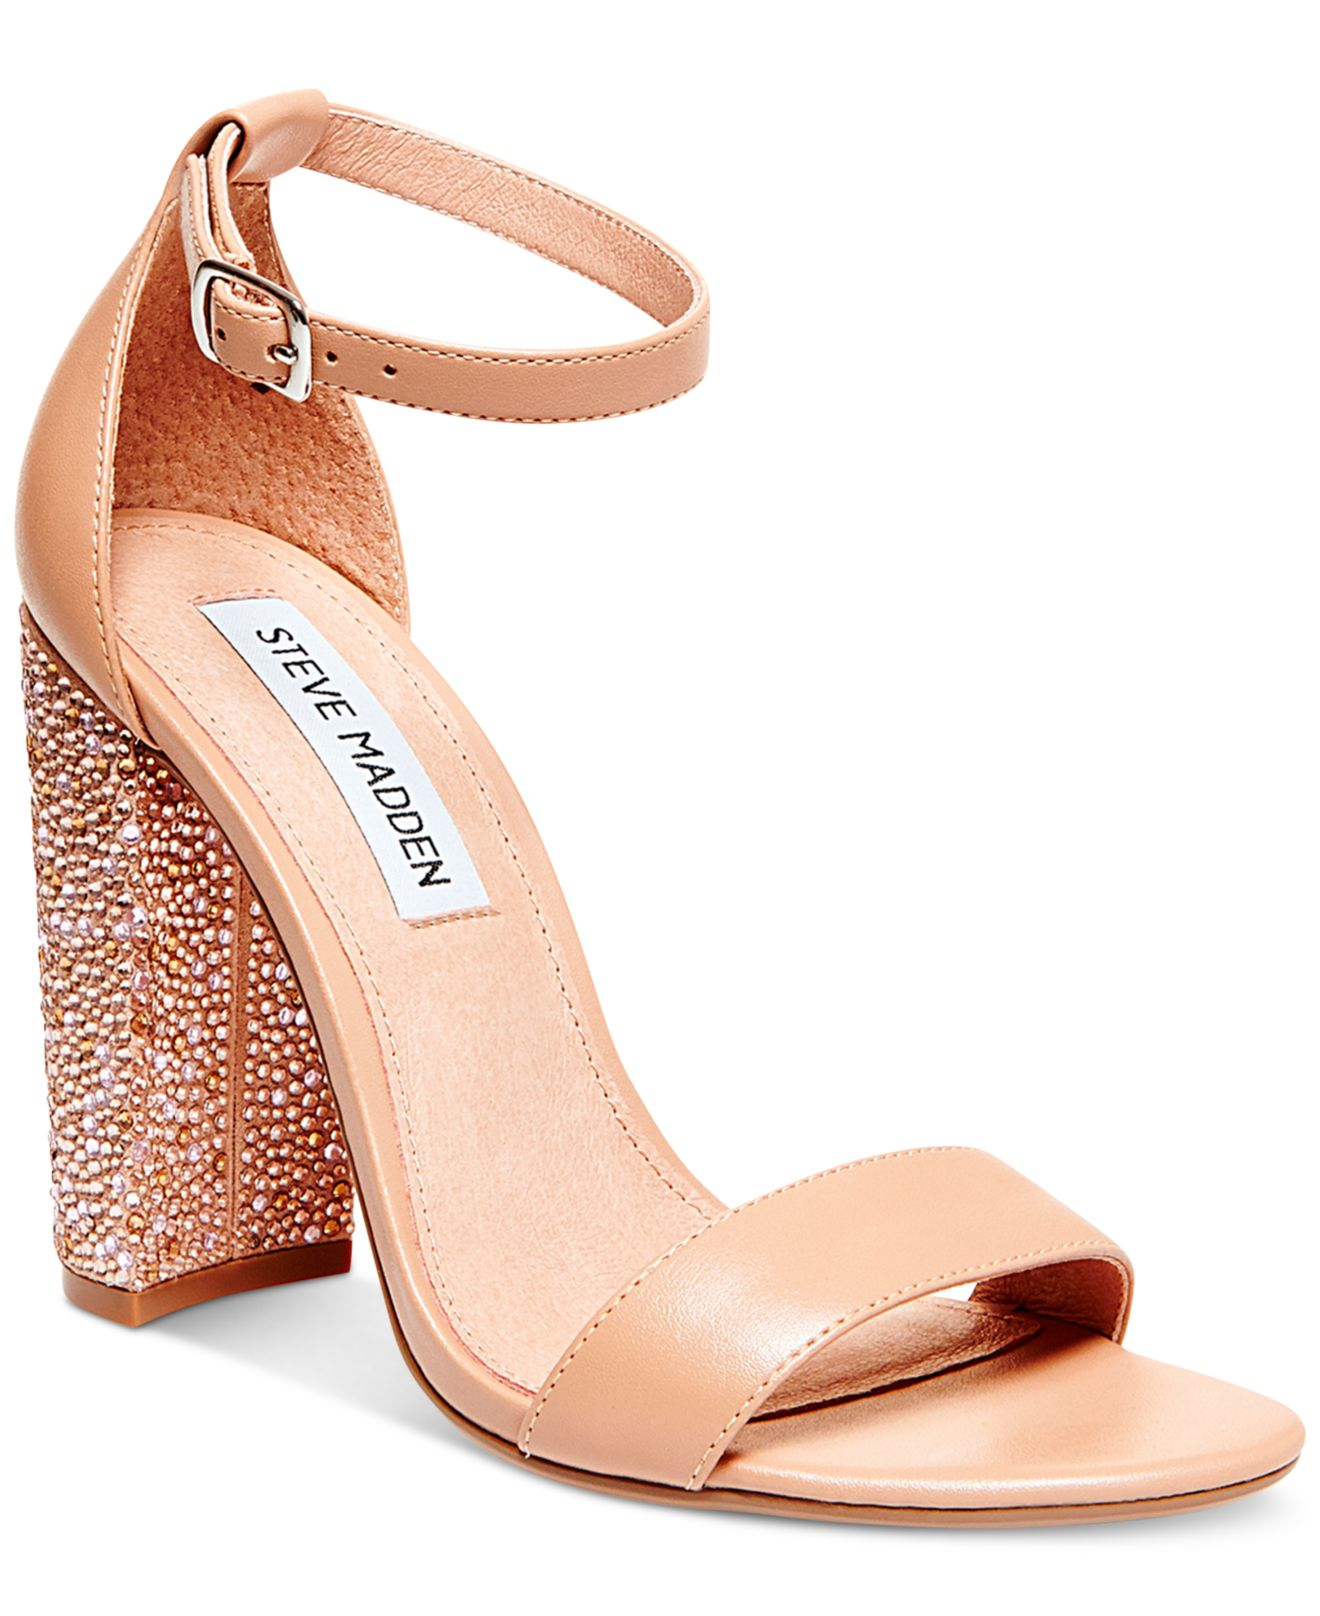 a914de20156 Lyst - Steve Madden Women s Carson-r Ankle Strap Sandals in Pink